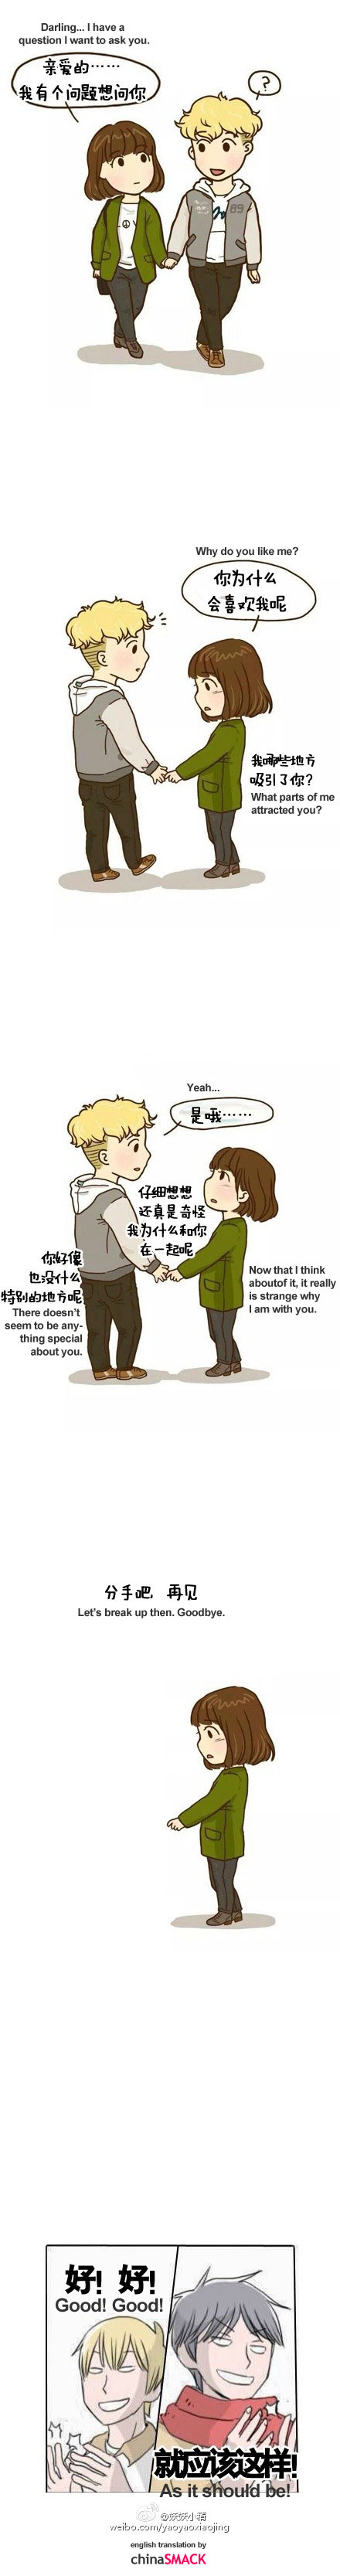 korean-comic-why-do-you-like-me-chinese-edit-translation-english